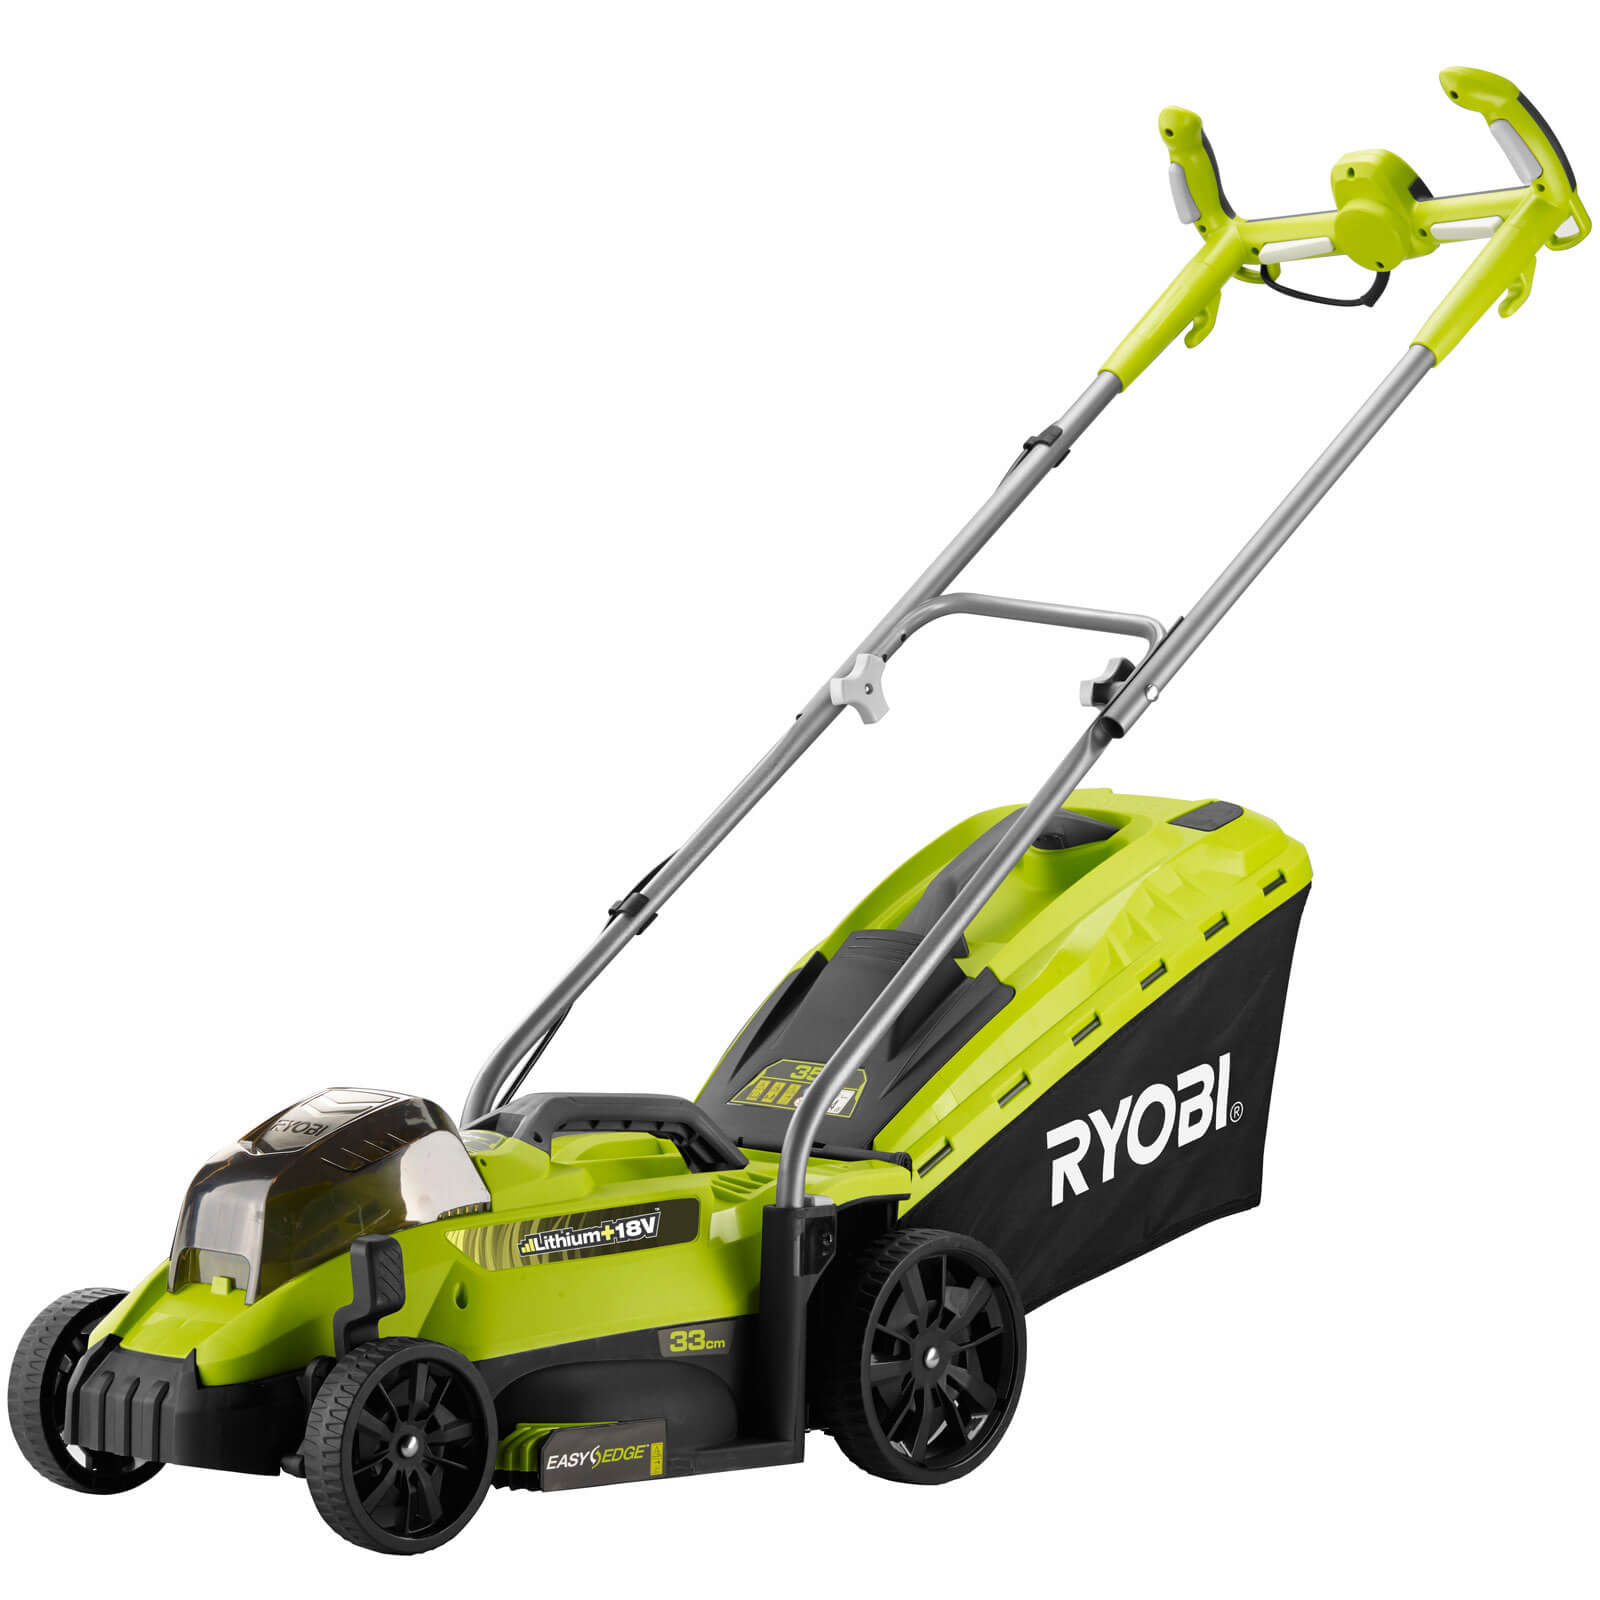 Image of Ryobi OLM1833H ONE+ 18v Cordless Rotary Lawnmower 330mm No Batteries No Charger